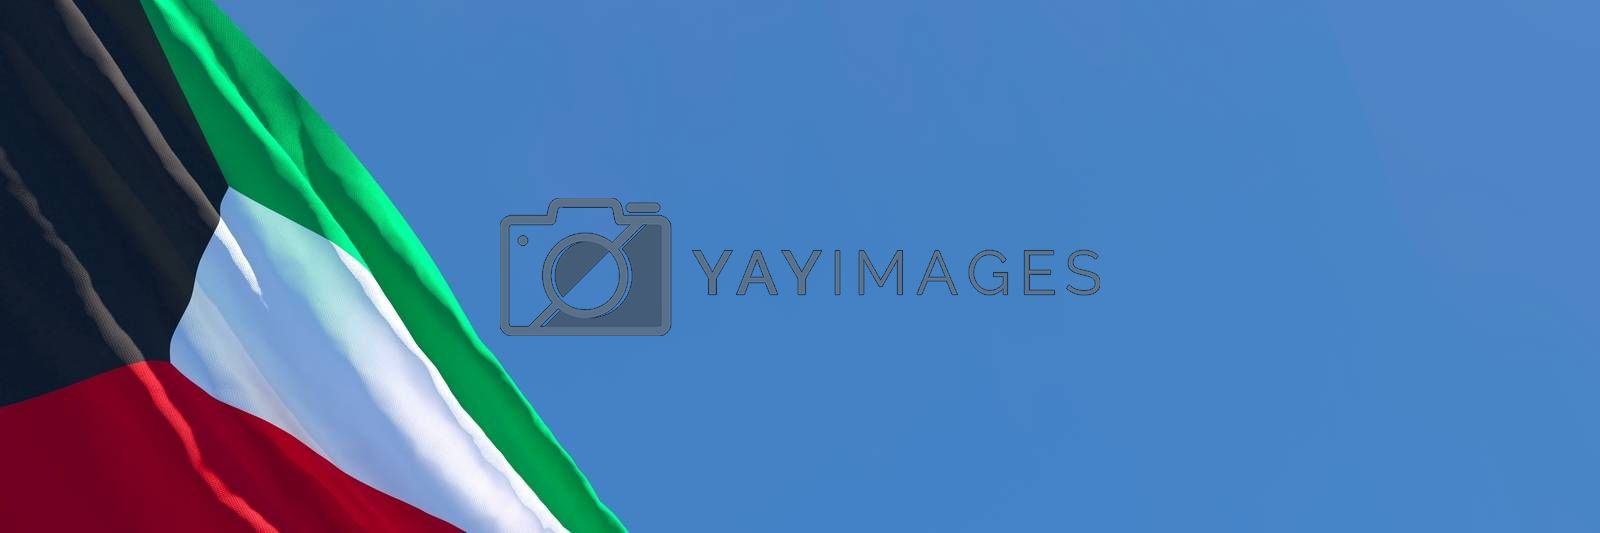 Royalty free image of 3D rendering of the national flag of Kuwait waving in the wind by butenkow